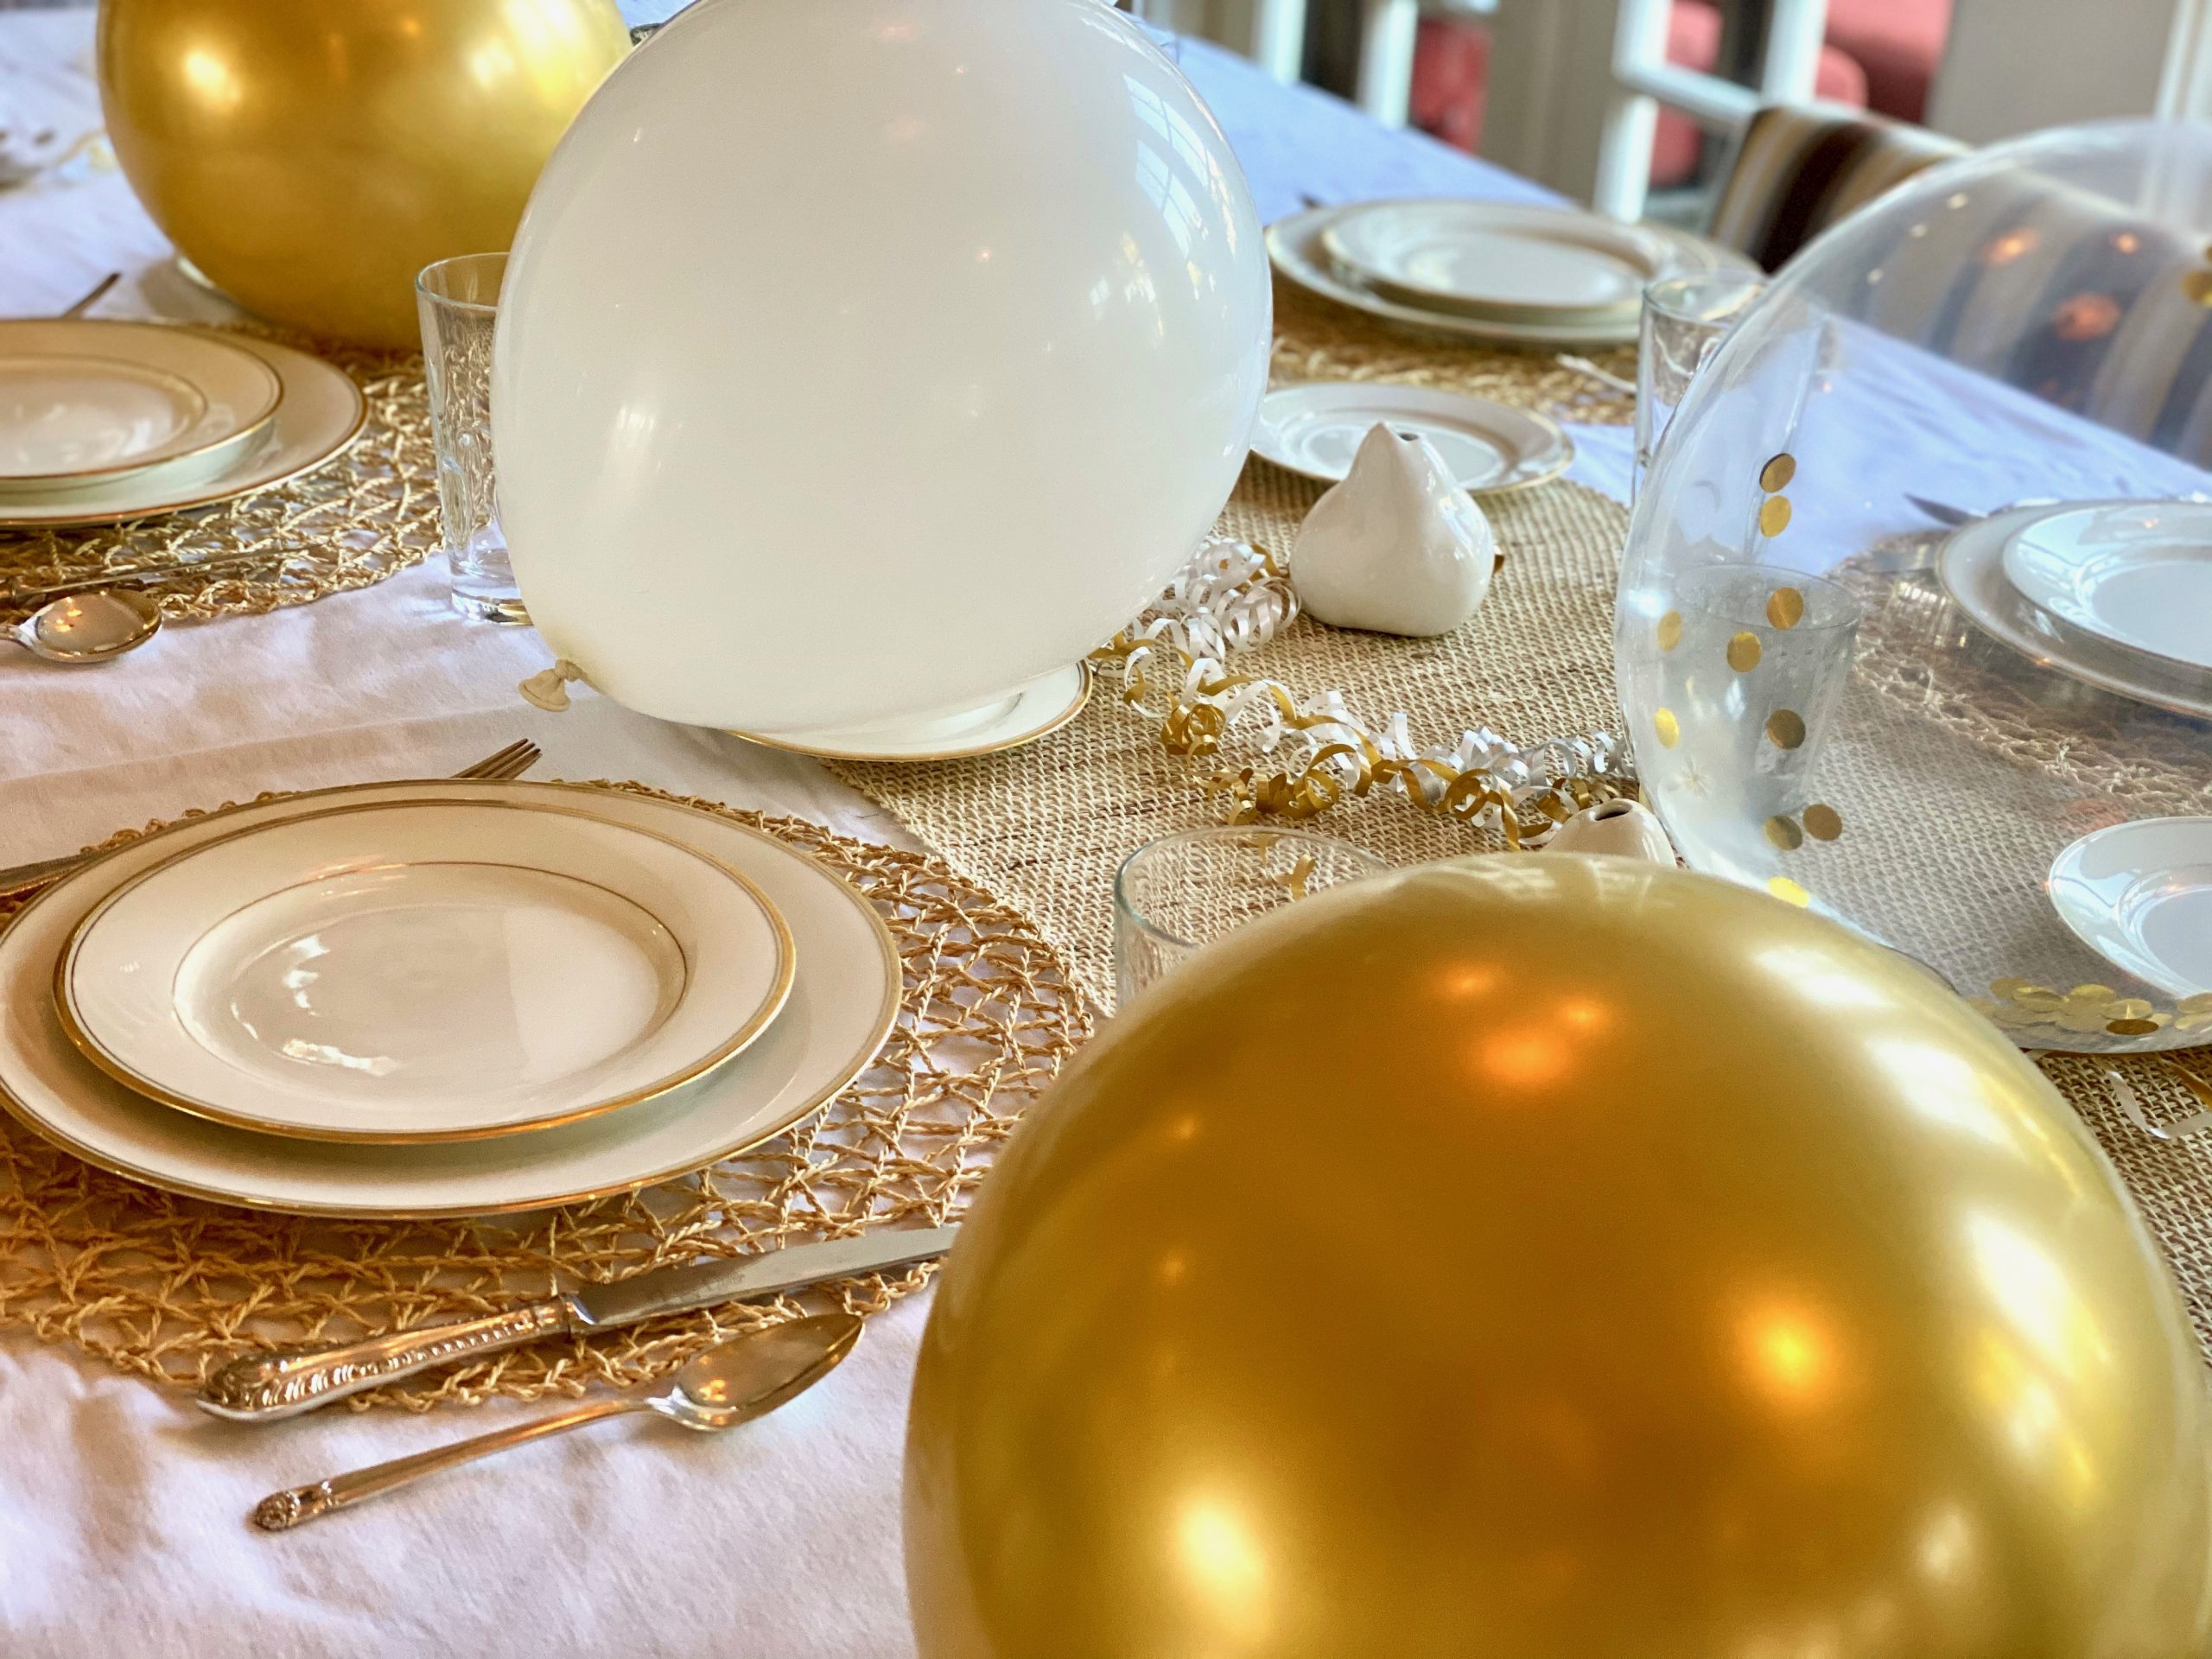 Golden and white table setting for festive dinner party